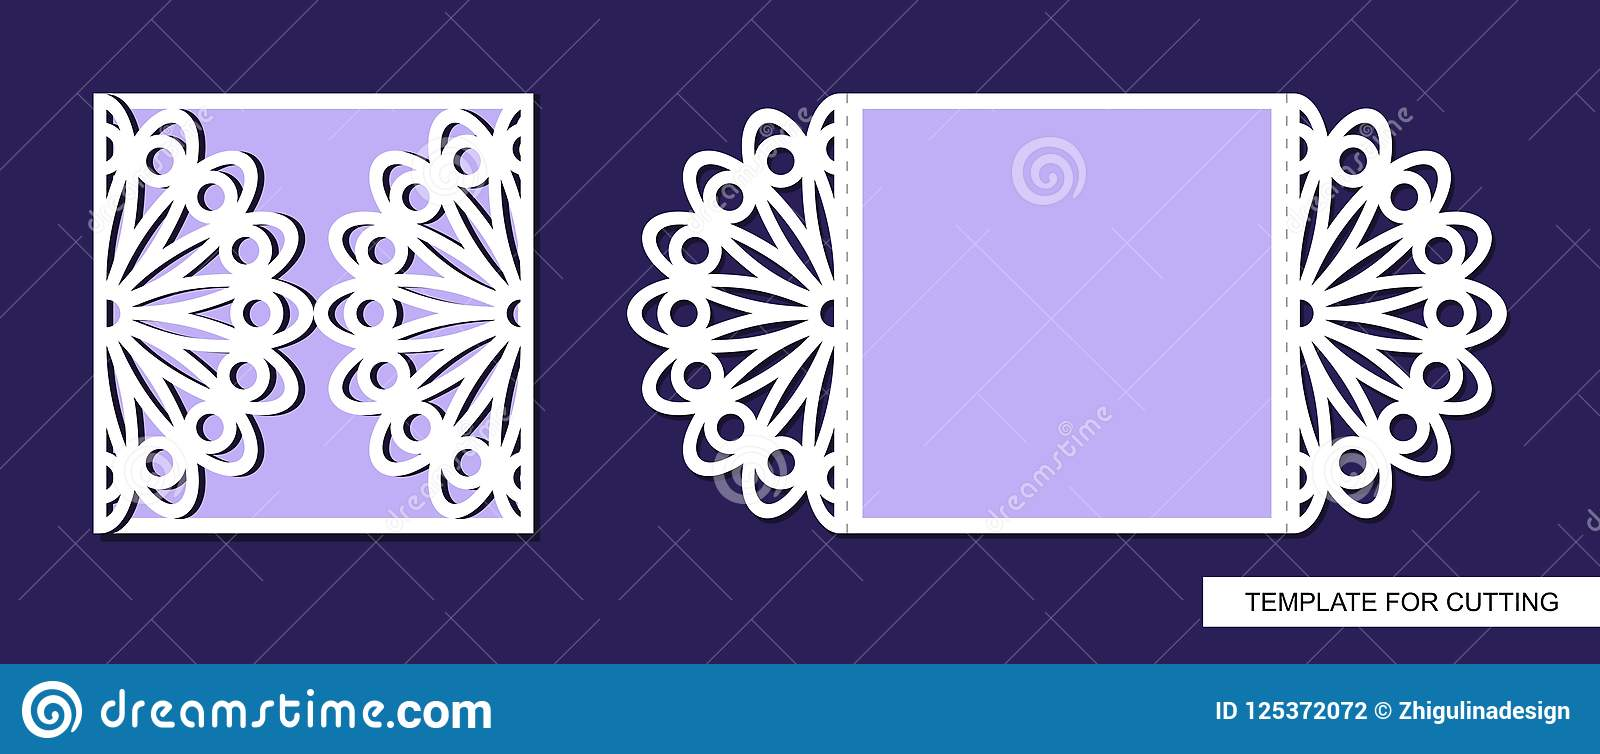 Silhouette Of Greeting Card Template For Laser Cutting Die Or